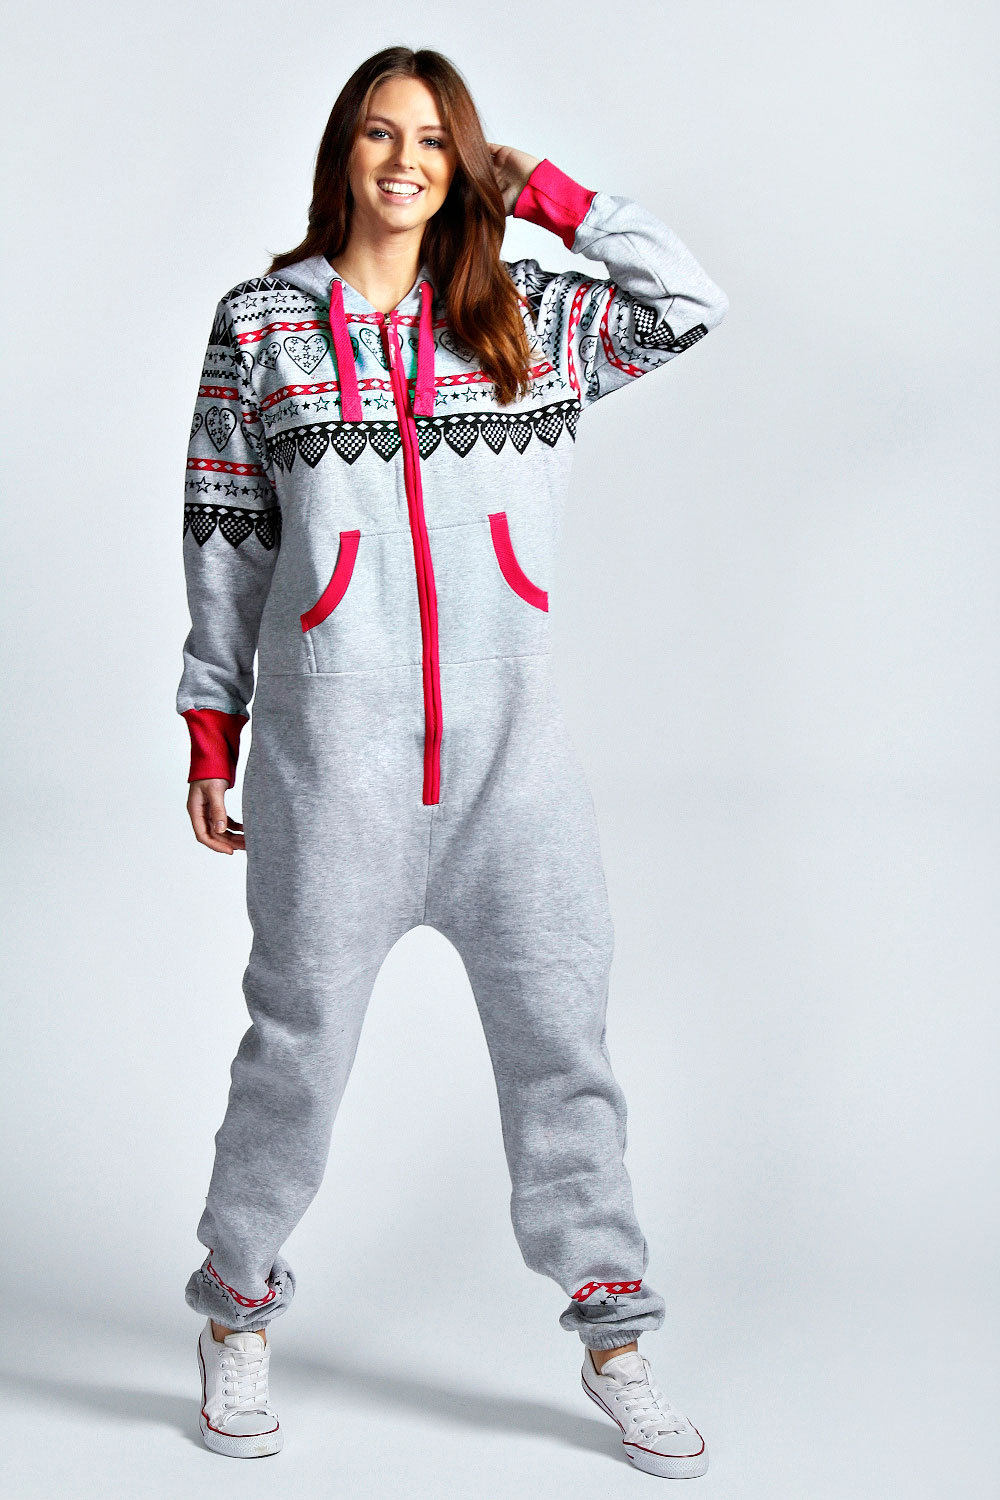 The adult onesies modeled by women are women's sizes, but men can wear them too! The model pictured below is 5' 9